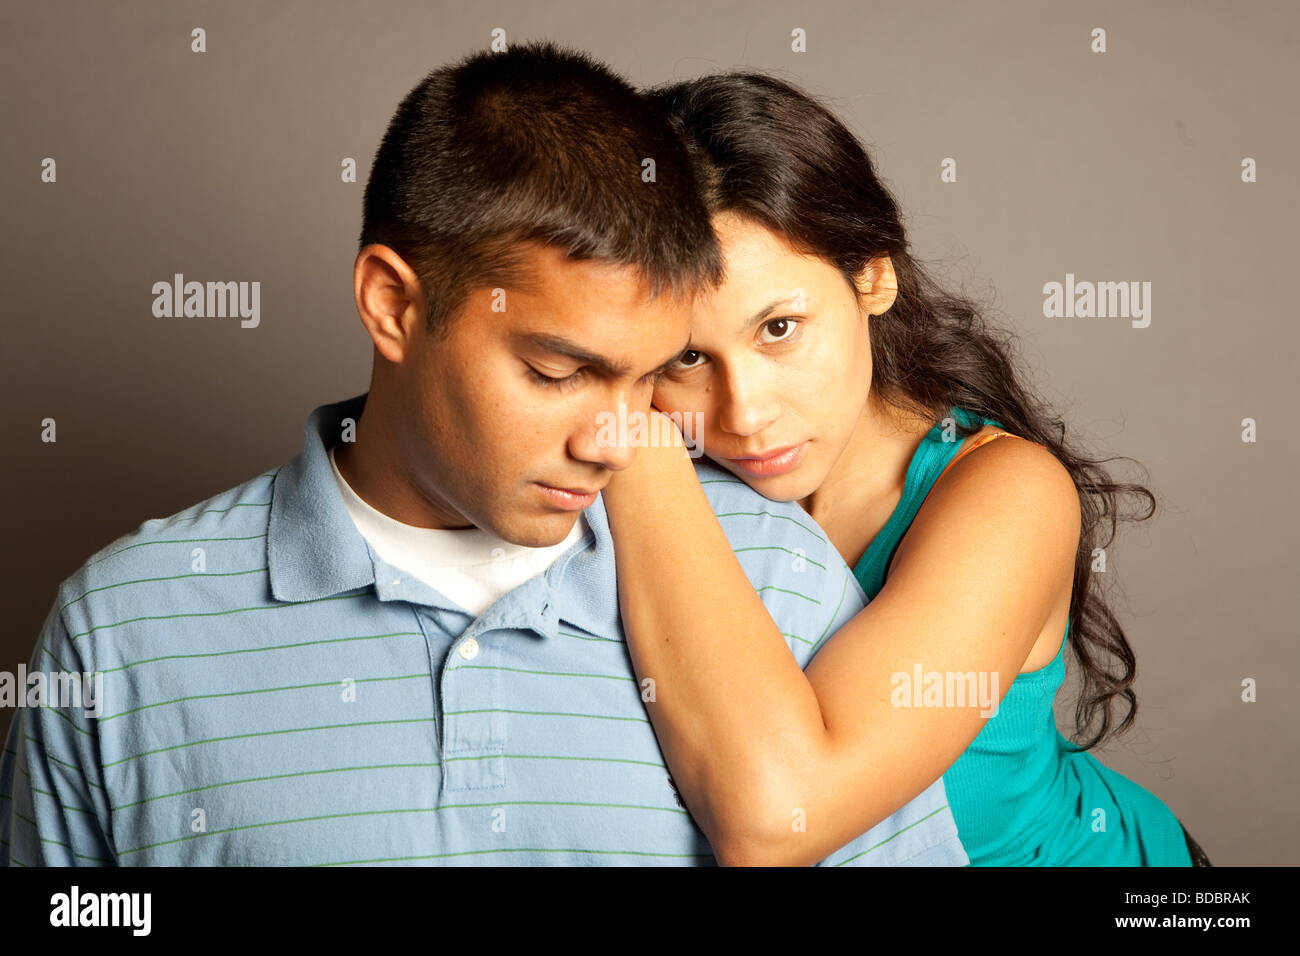 Male female couple posing together in studio in front of a neutral colored backdrop.  Woman is resting hands on - Stock Image